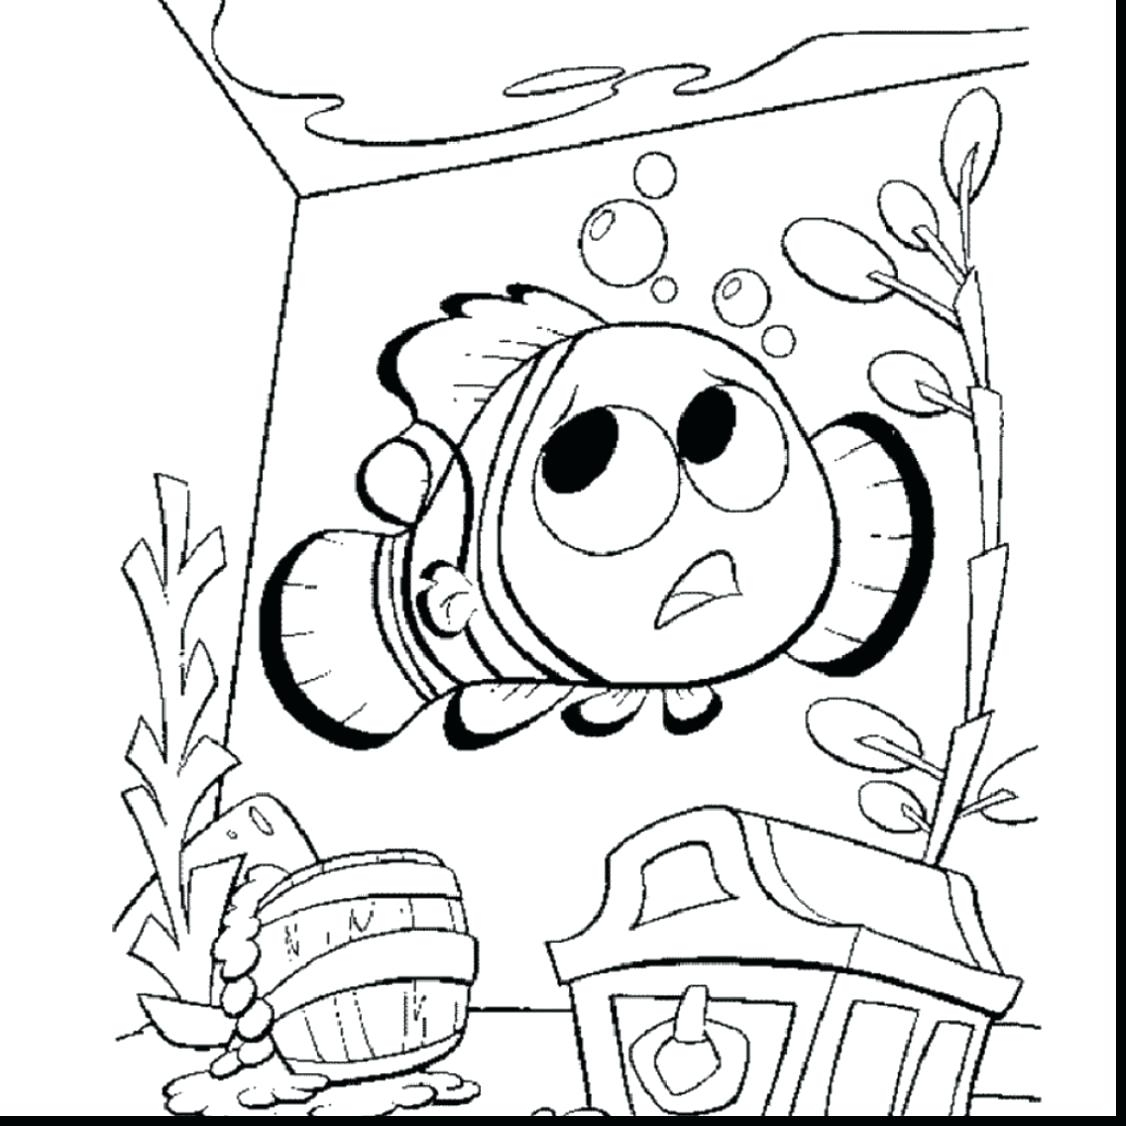 1126x1126 Coloring Nemo Printable Coloring Pages Finding Sheet Free New